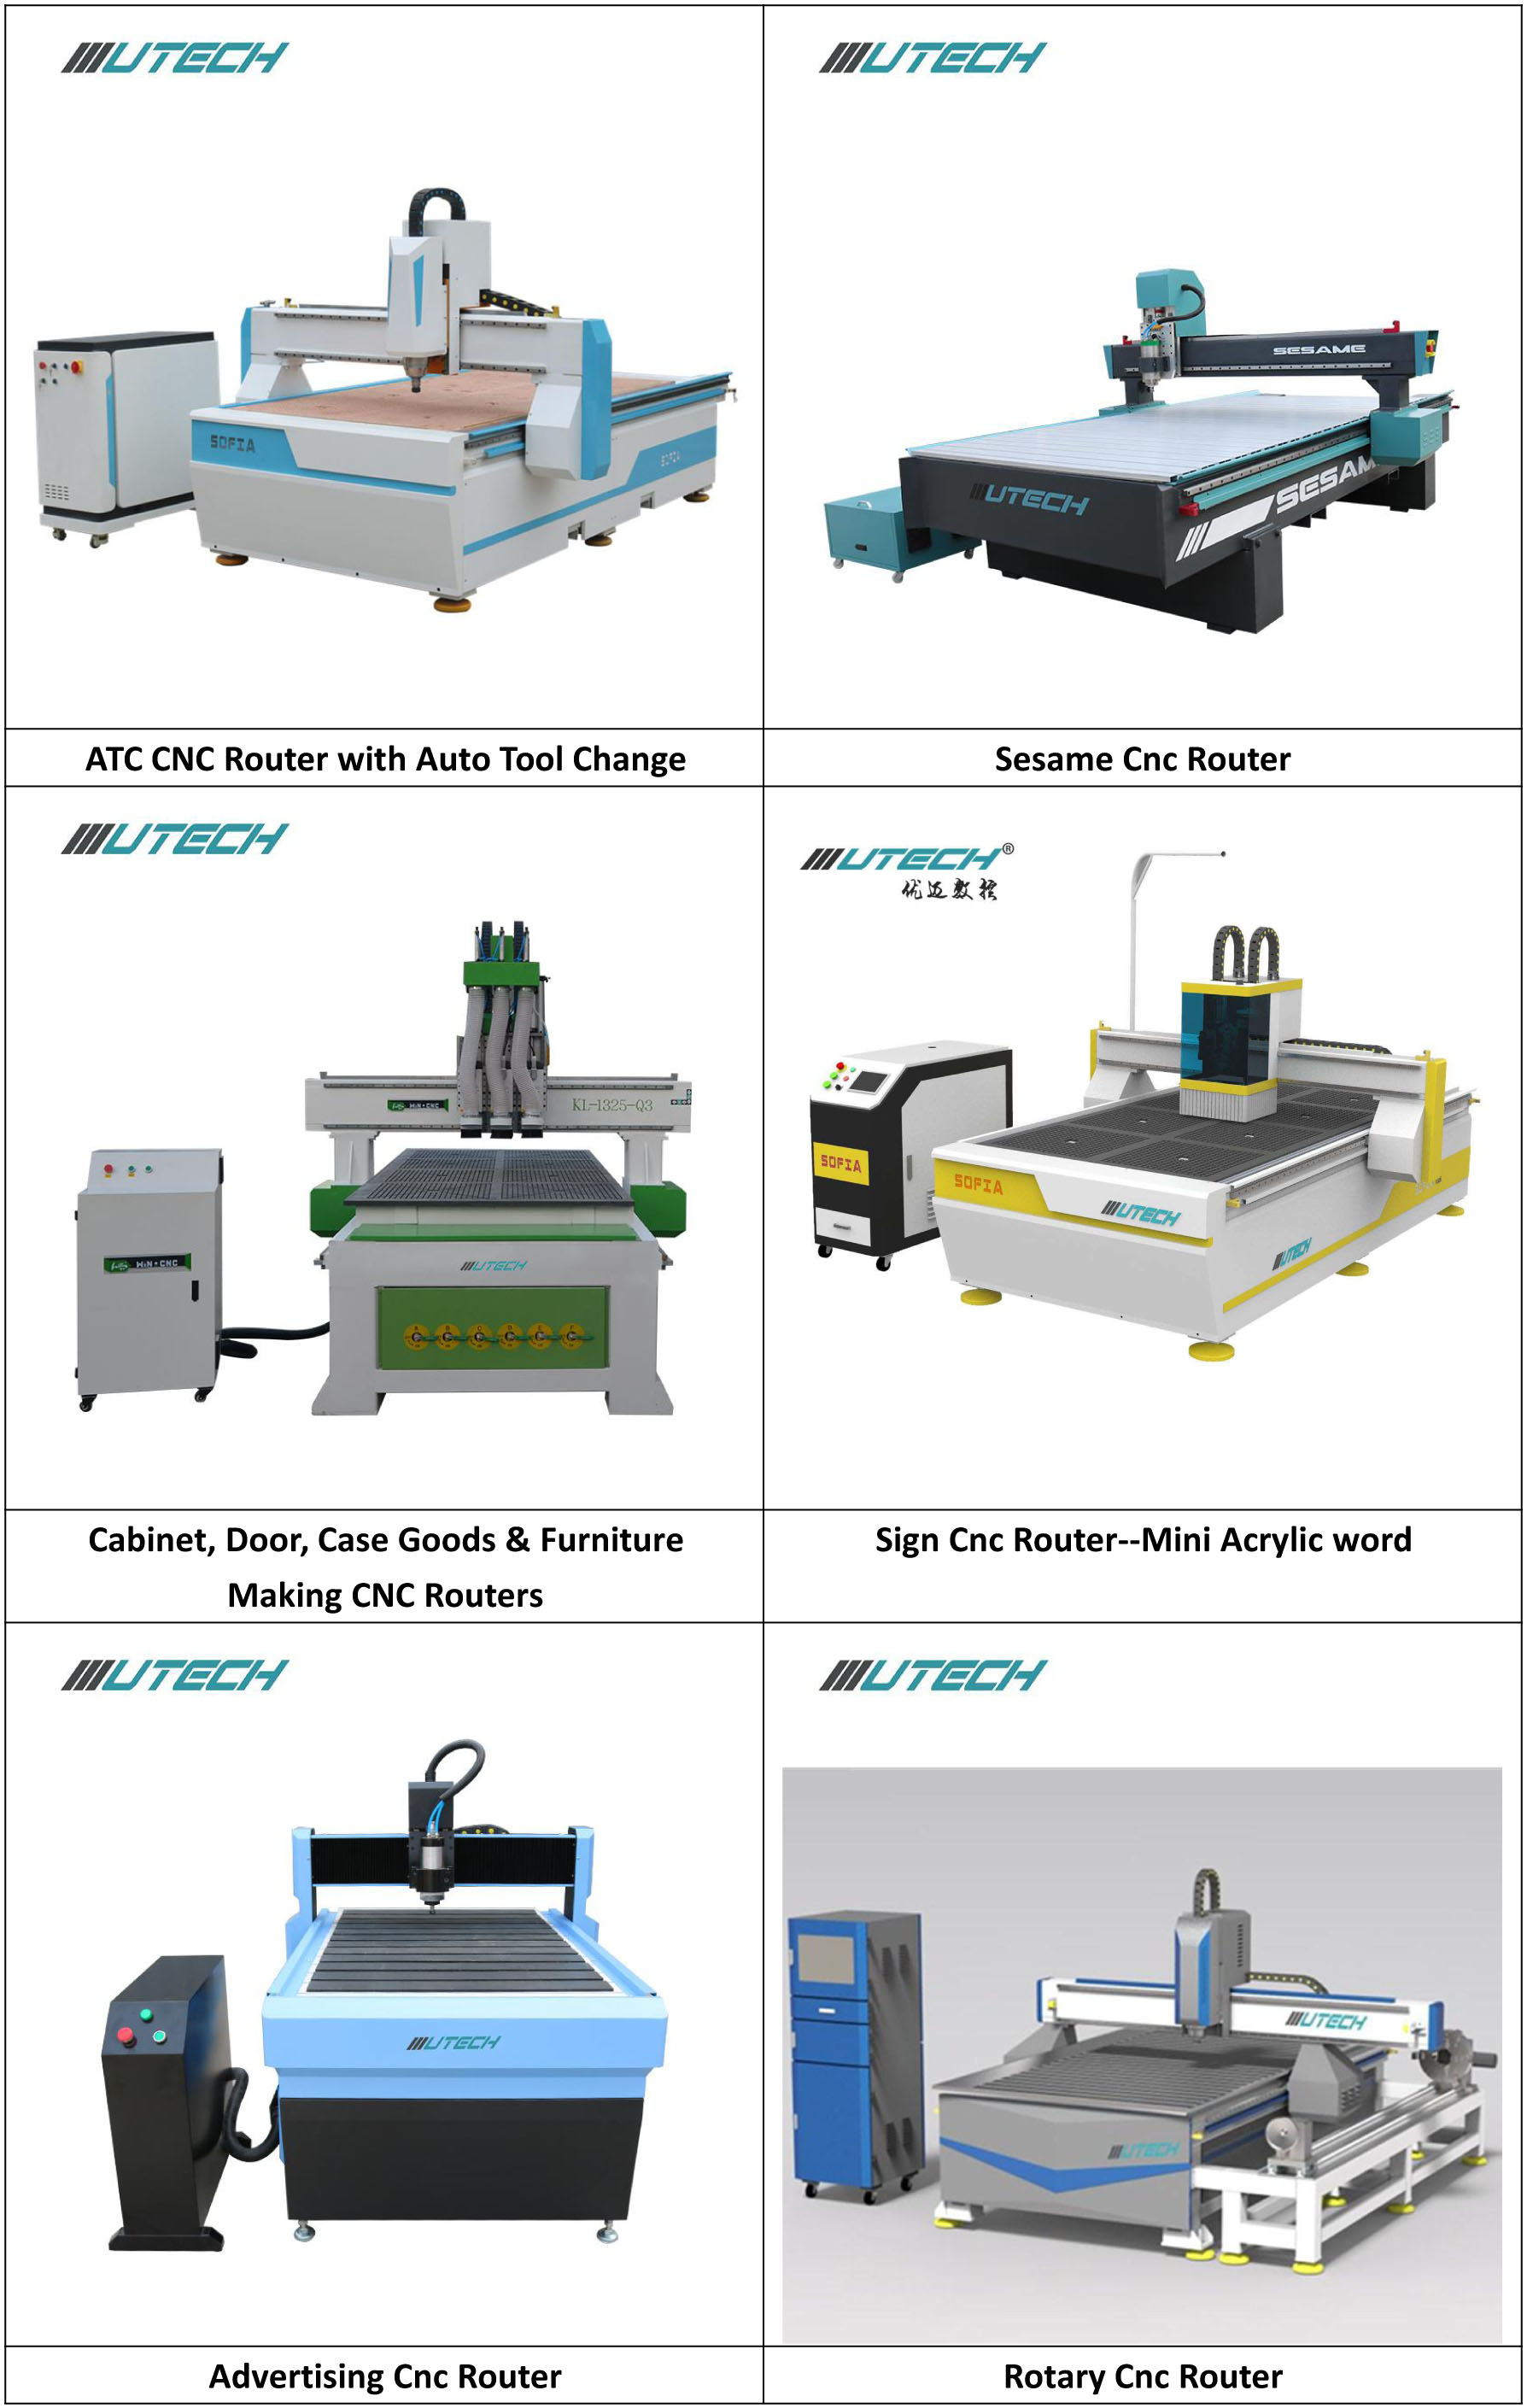 cnc router for decoration furaniture